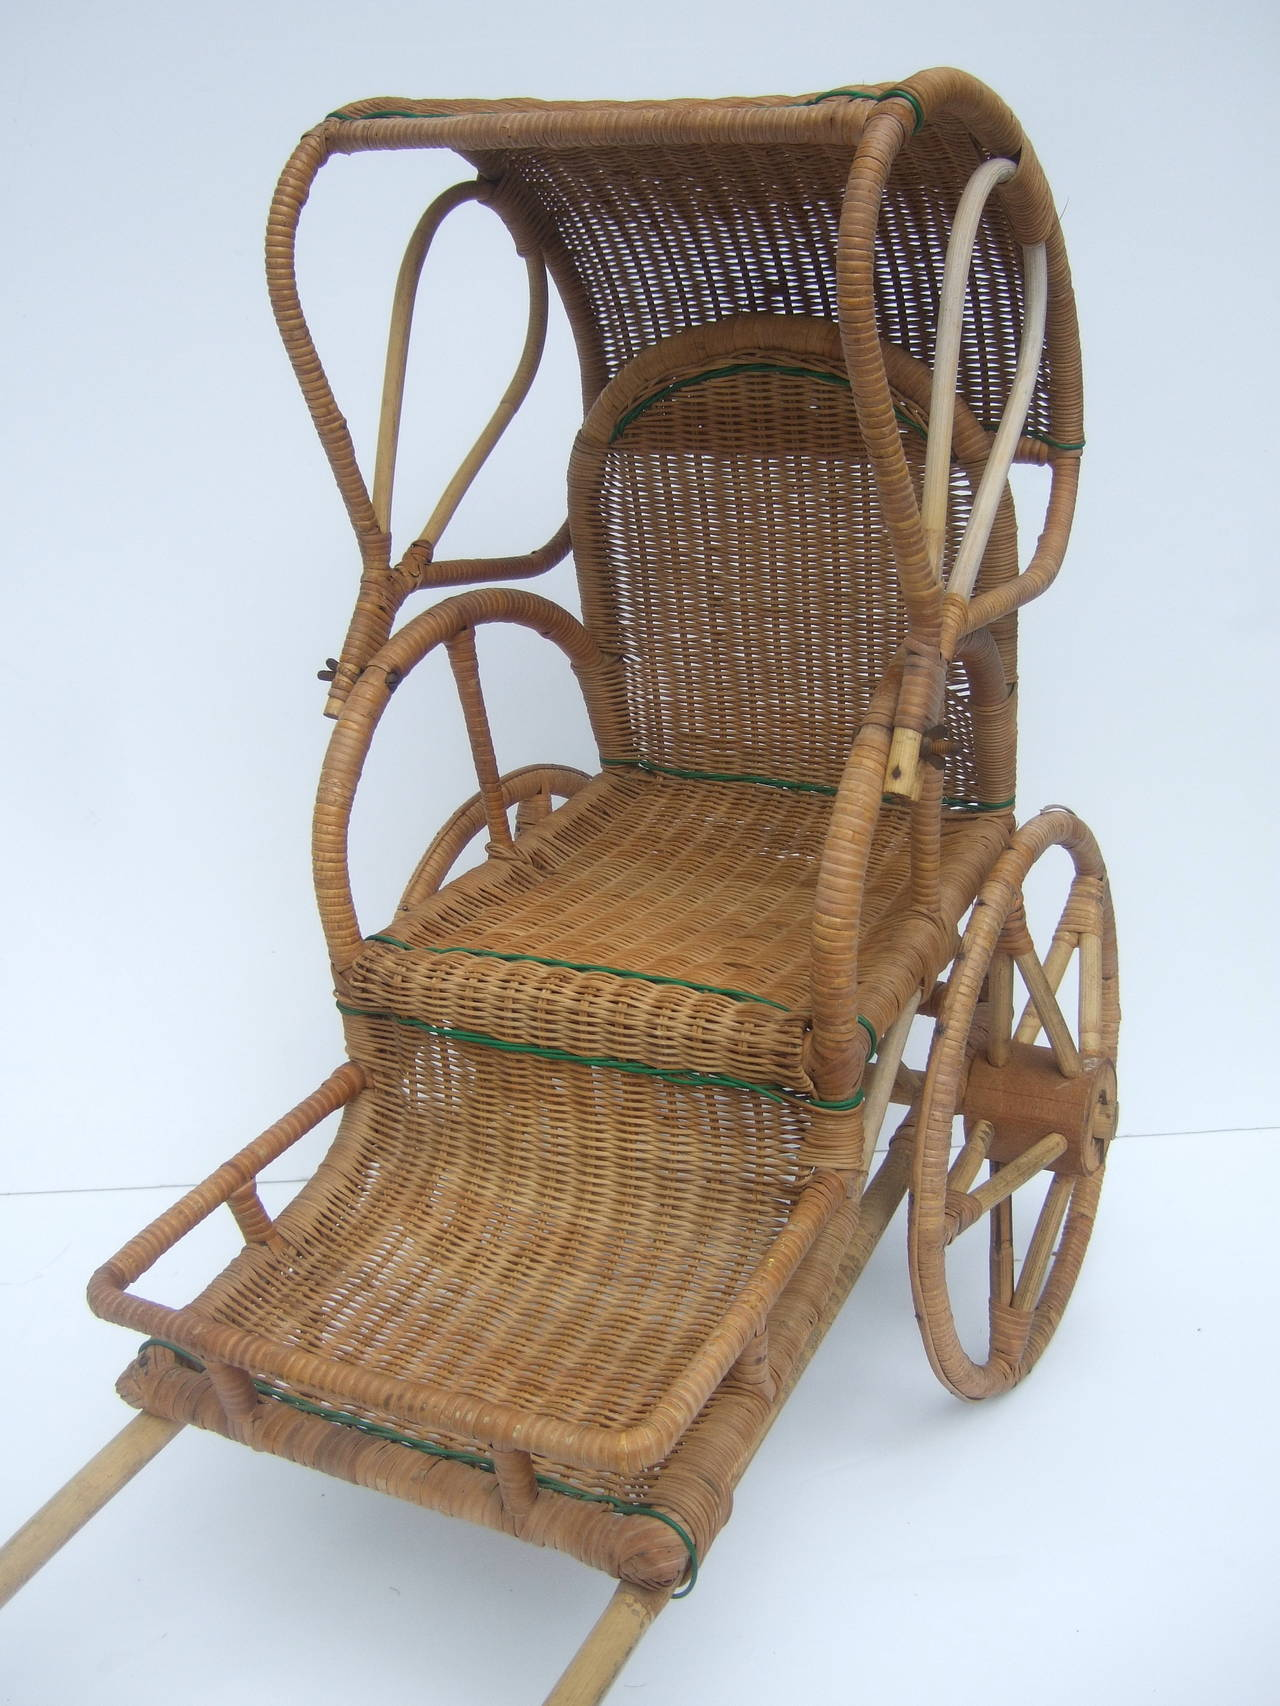 Exotic Wicker Handmade Pulled Child S Rickshaw C 1950 For